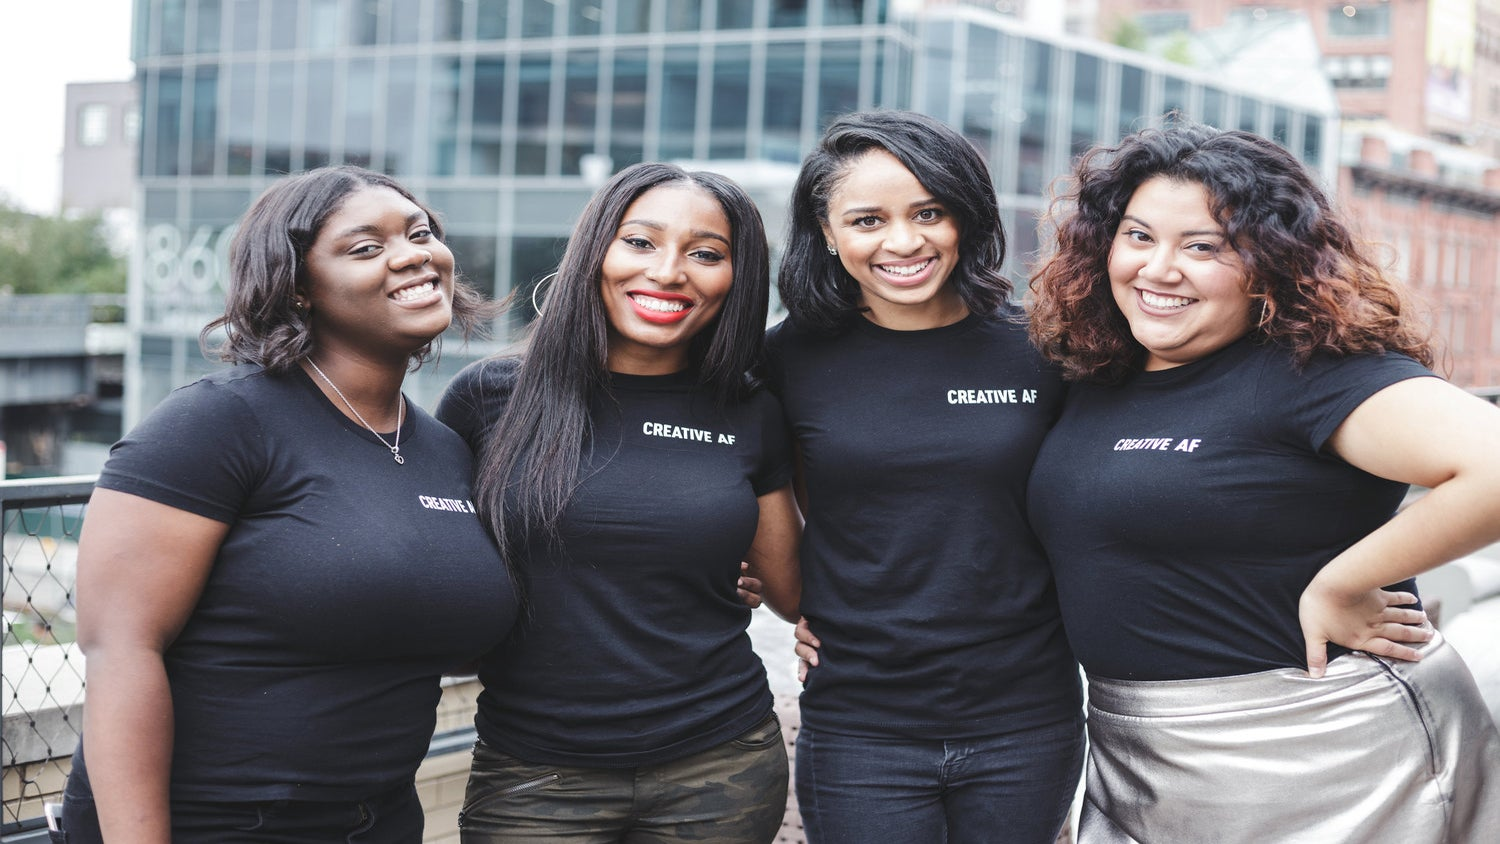 This Black Woman Is Building A Community Of Creatives In NYC